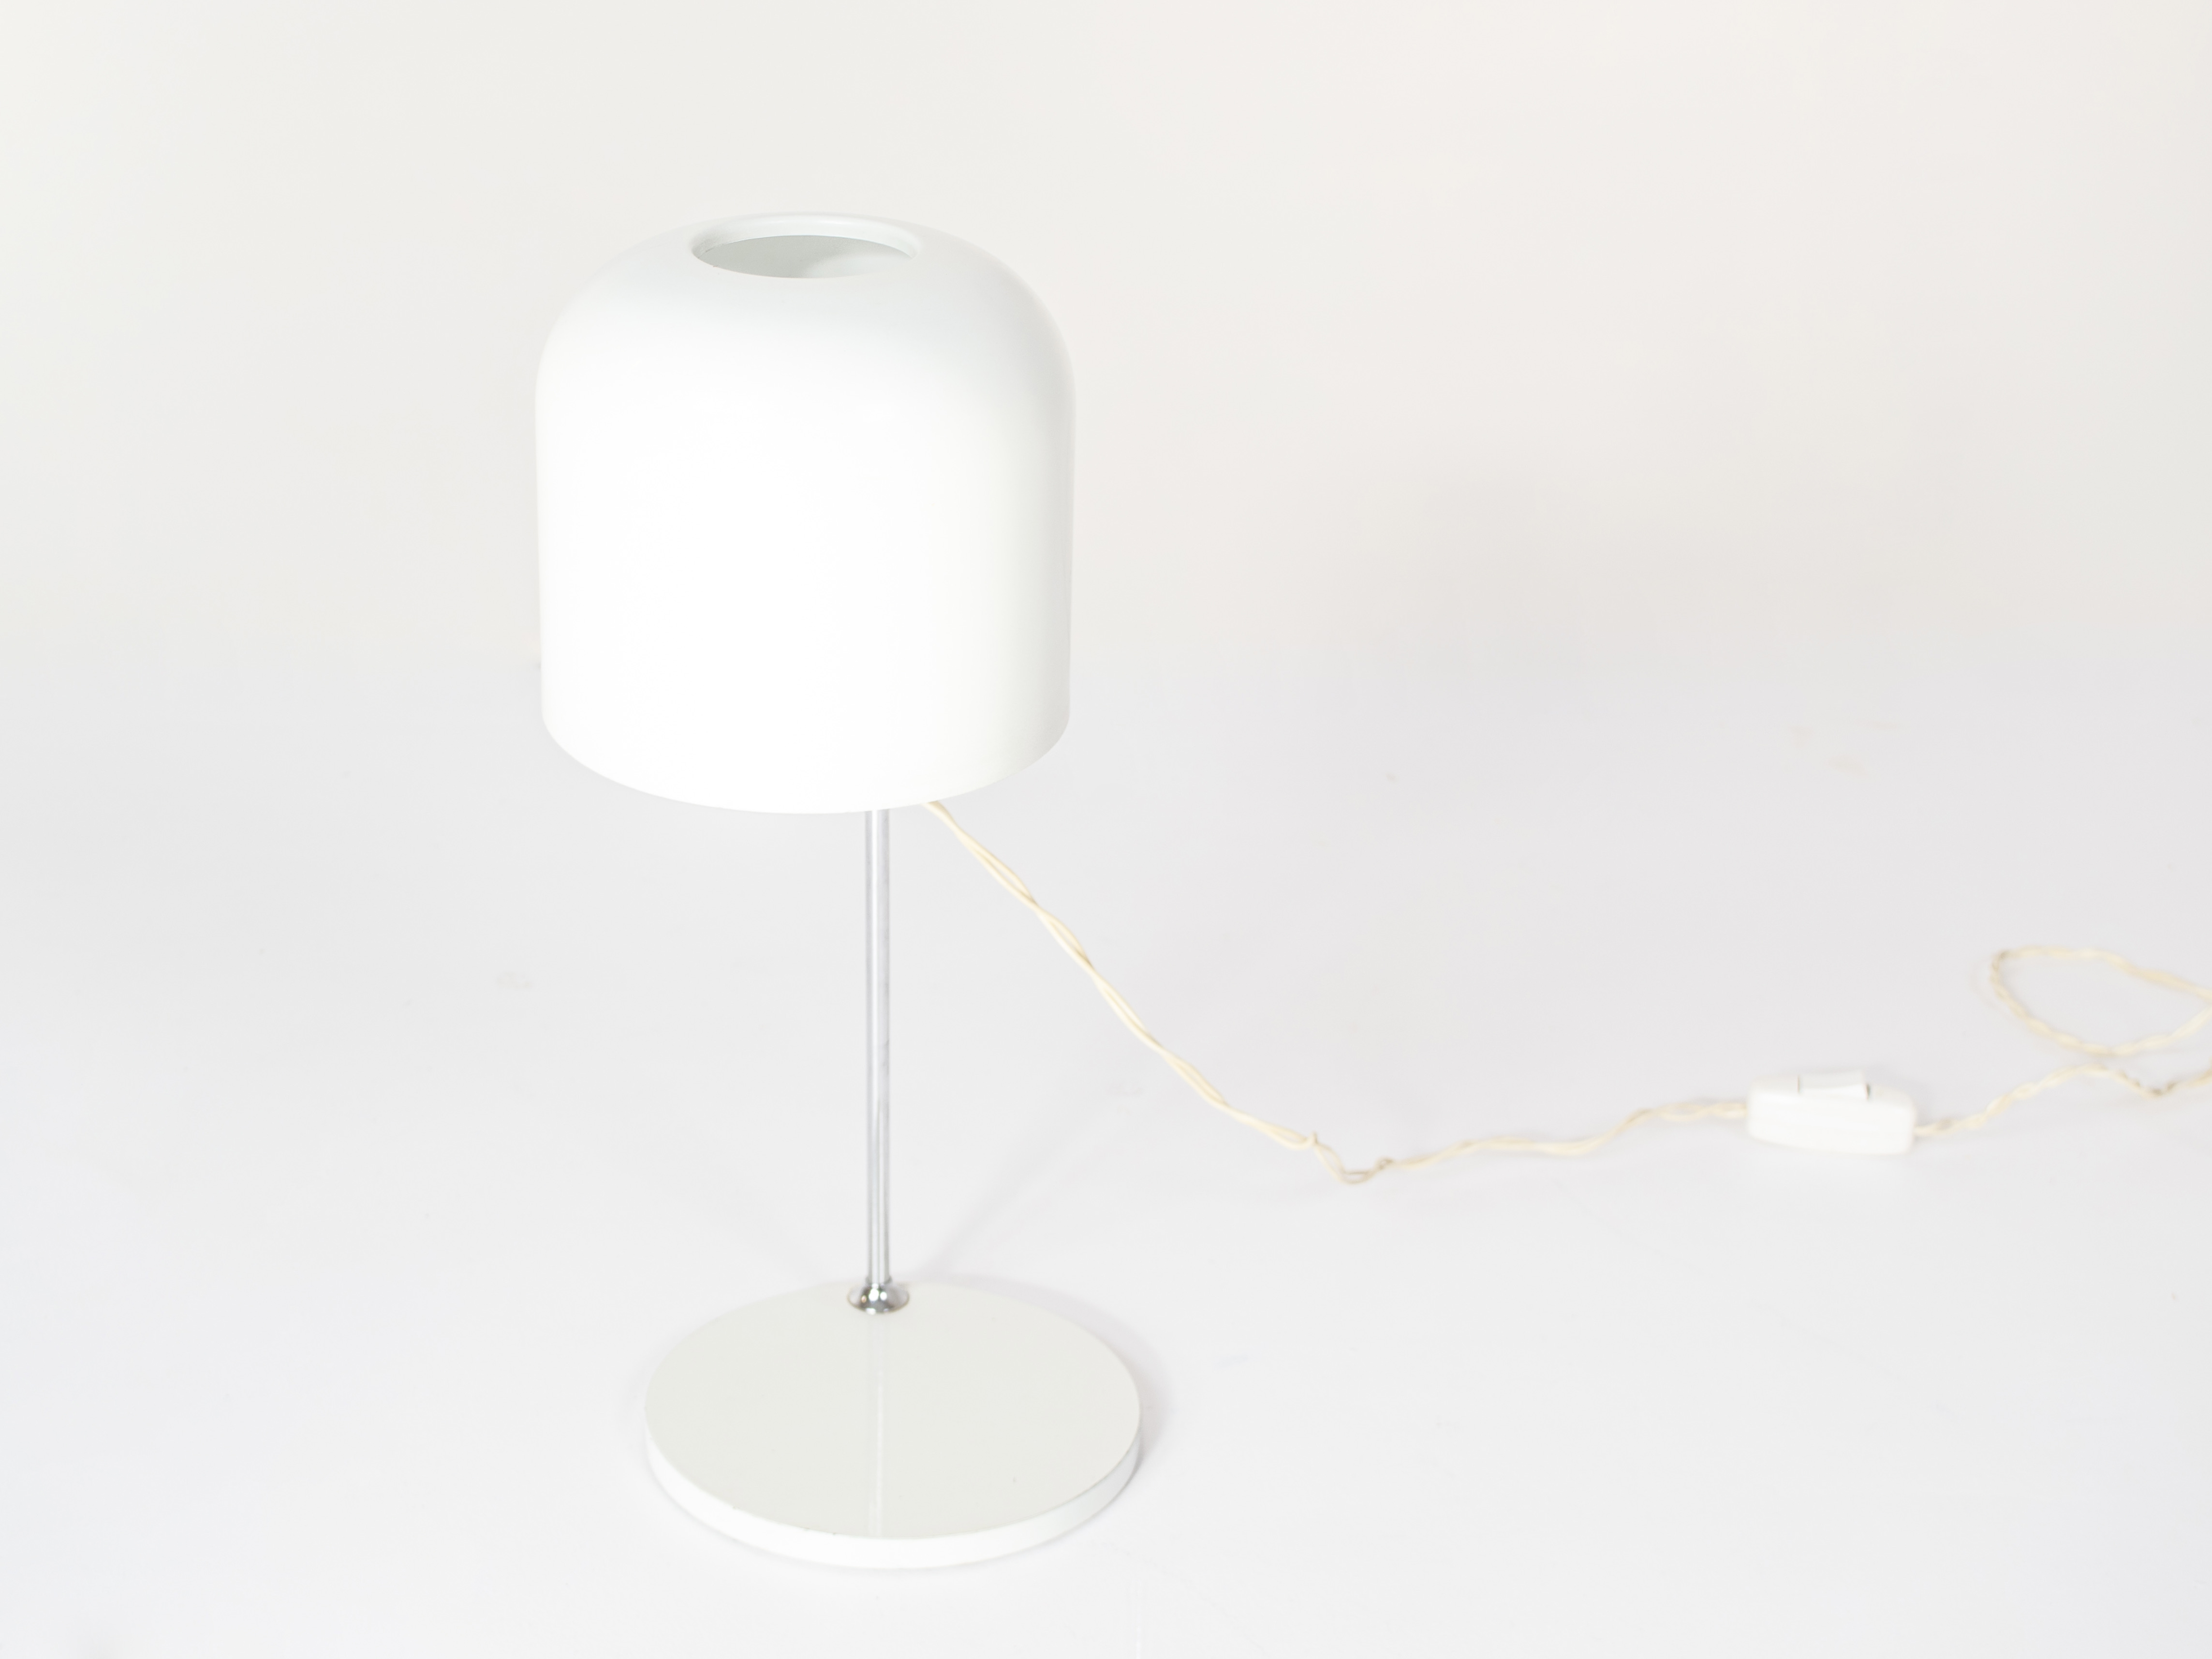 Rare Metalarte Table Lamp by André Ricard, Spain 1960s